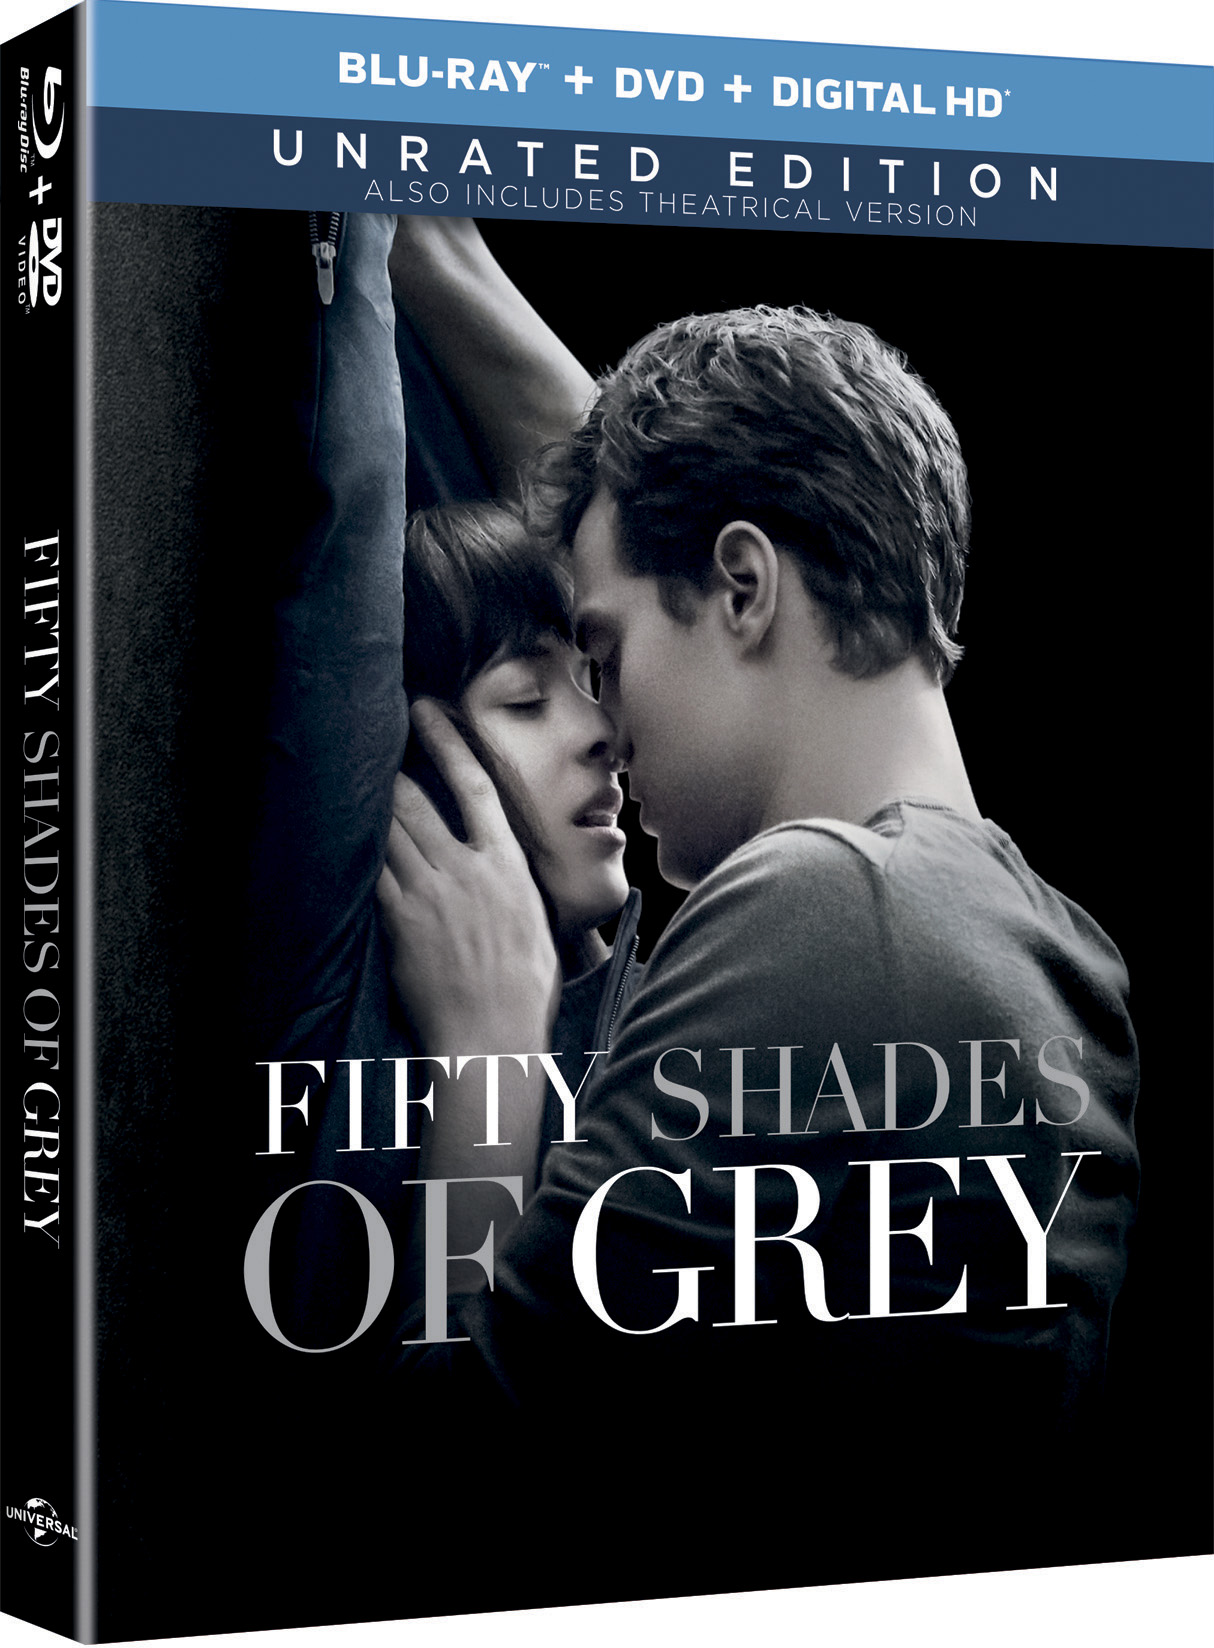 Fifty Shades of Grey Blu-ray/DVD